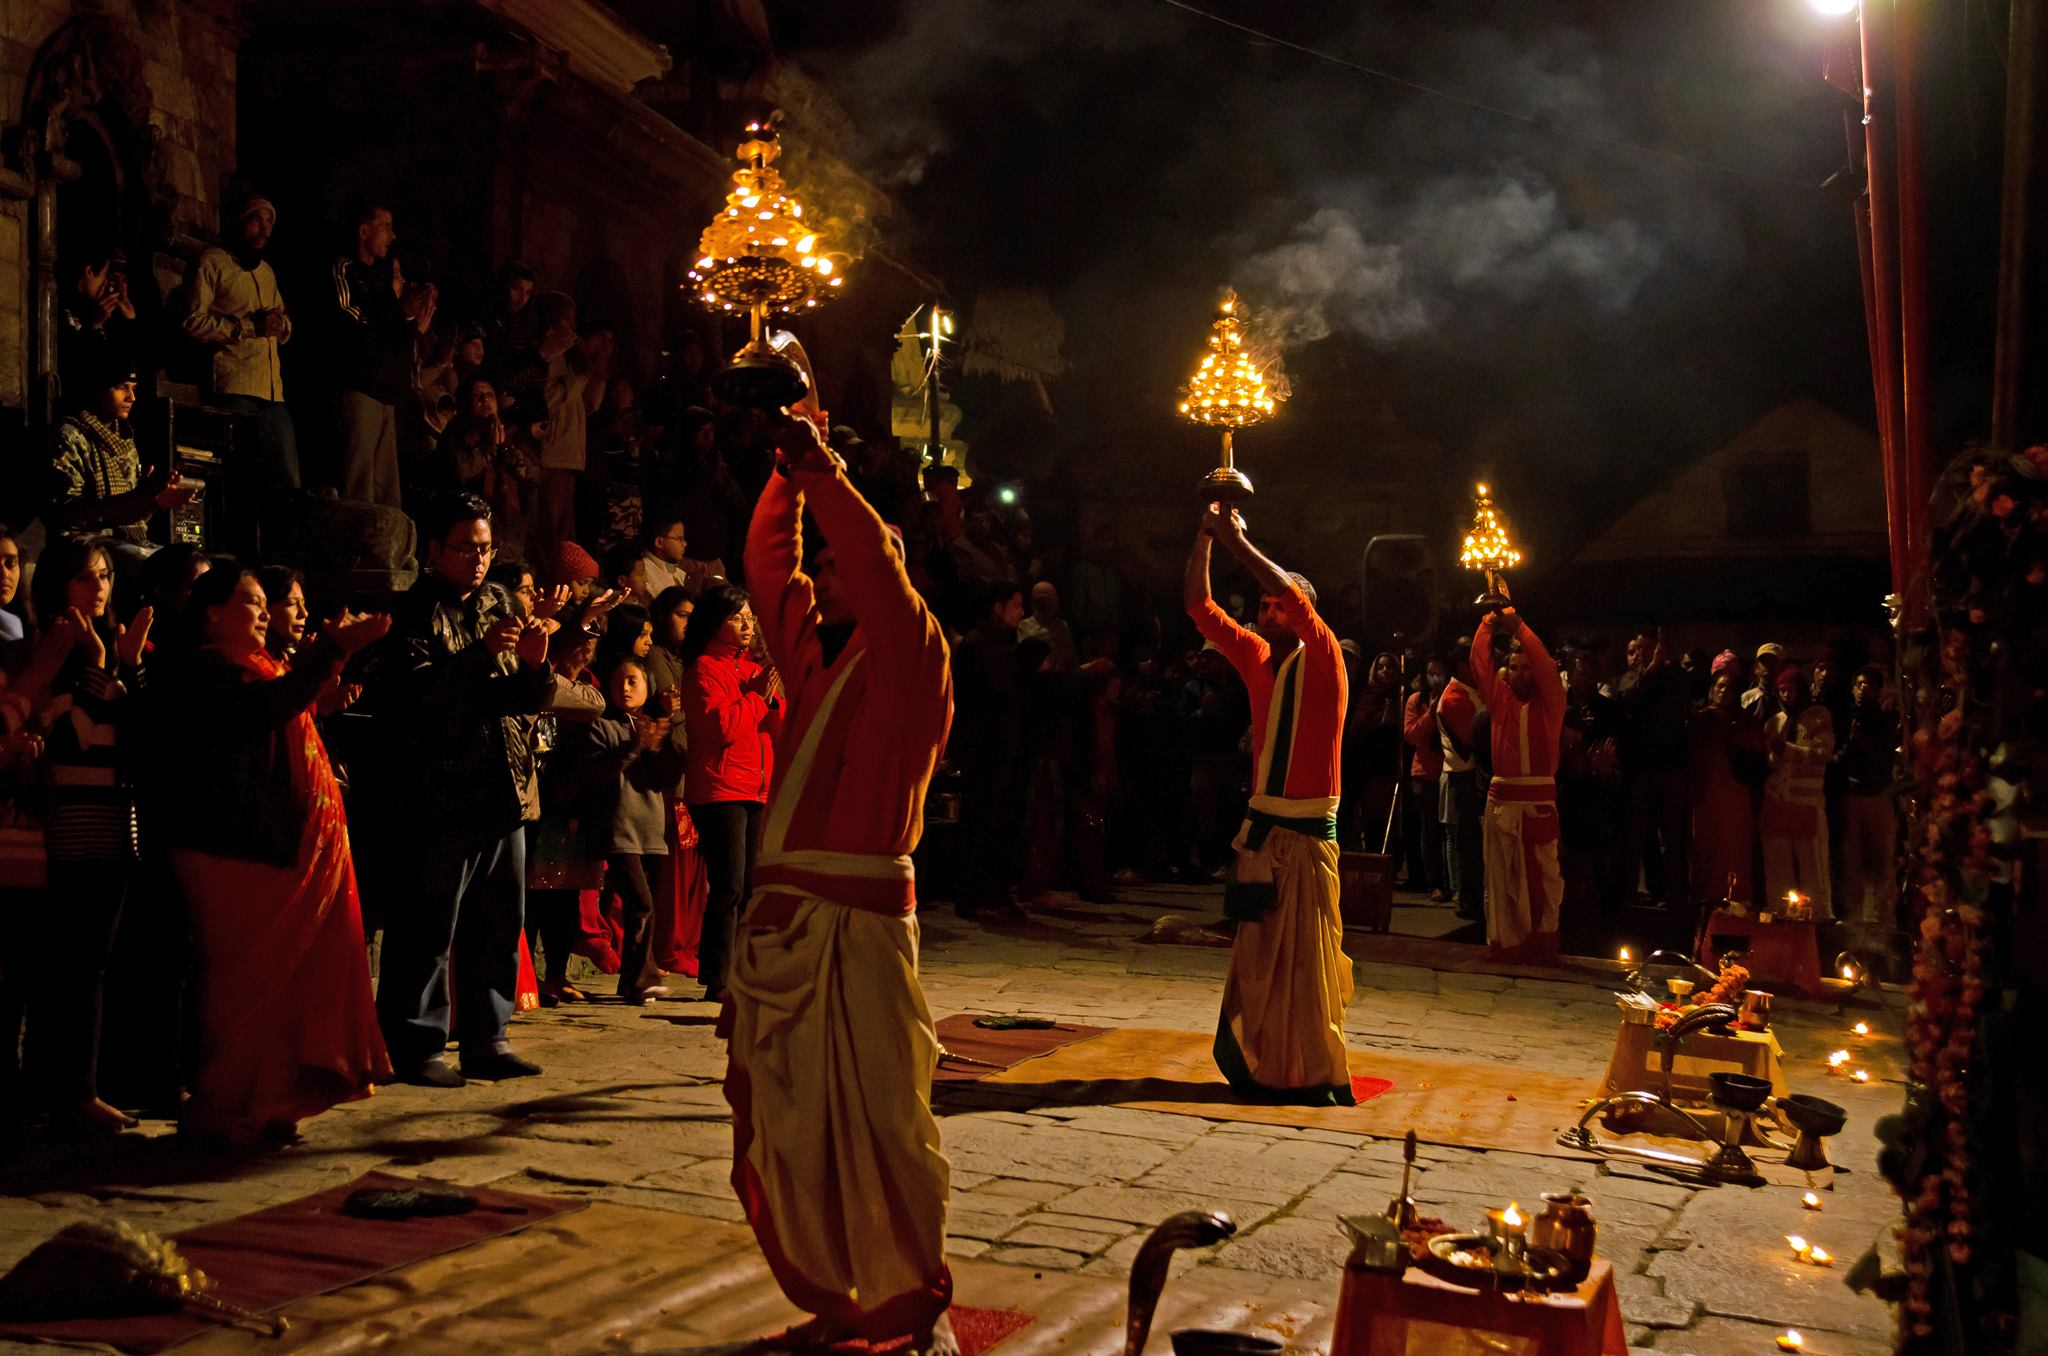 three holy men carrying torches in a procession during a ceremony at Pashupatinath Temple seen on safari in nepal